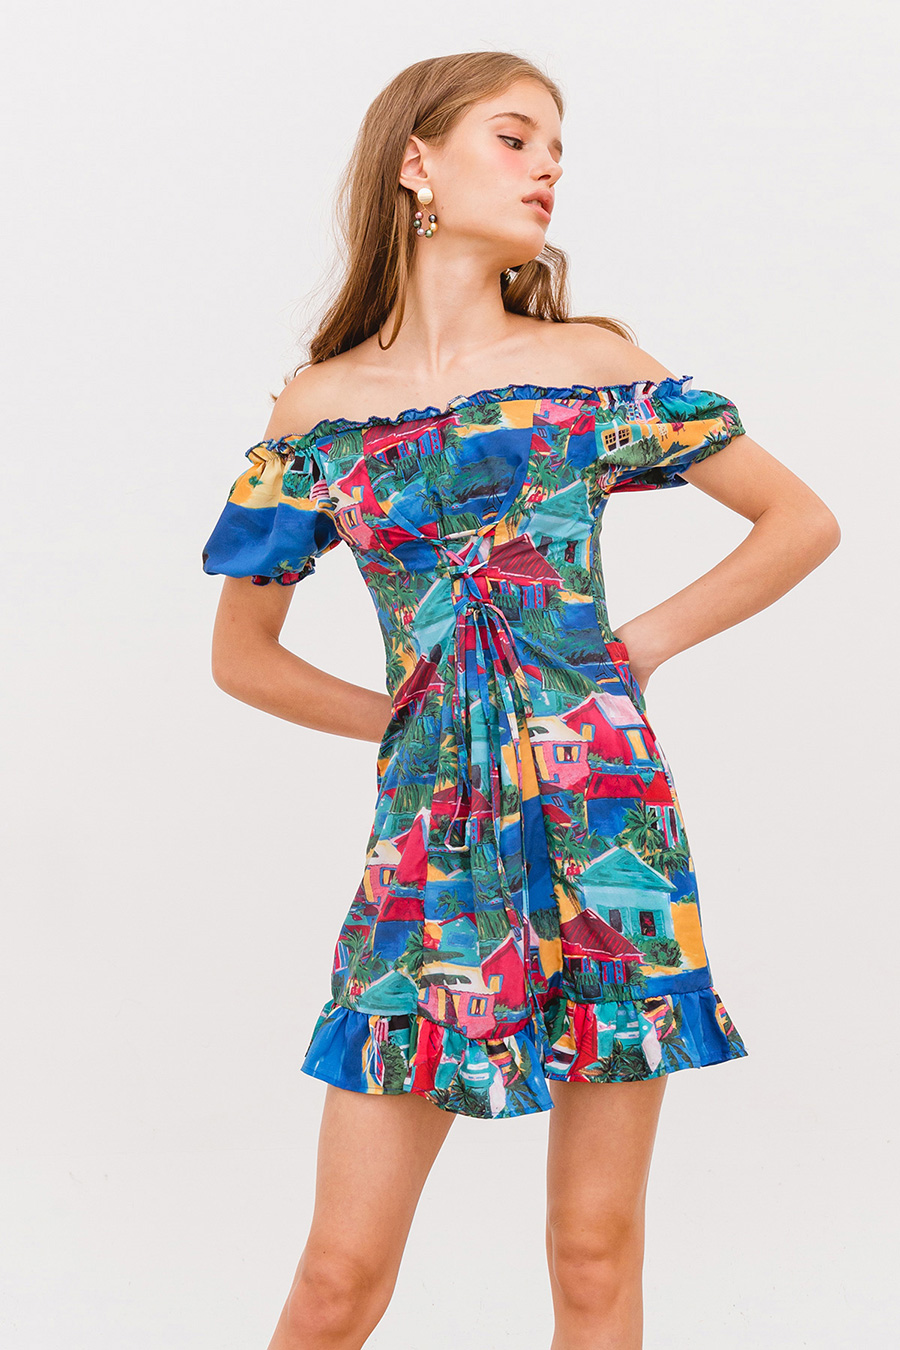 *BO* LAGOON DRESS - PICASSO BLUE